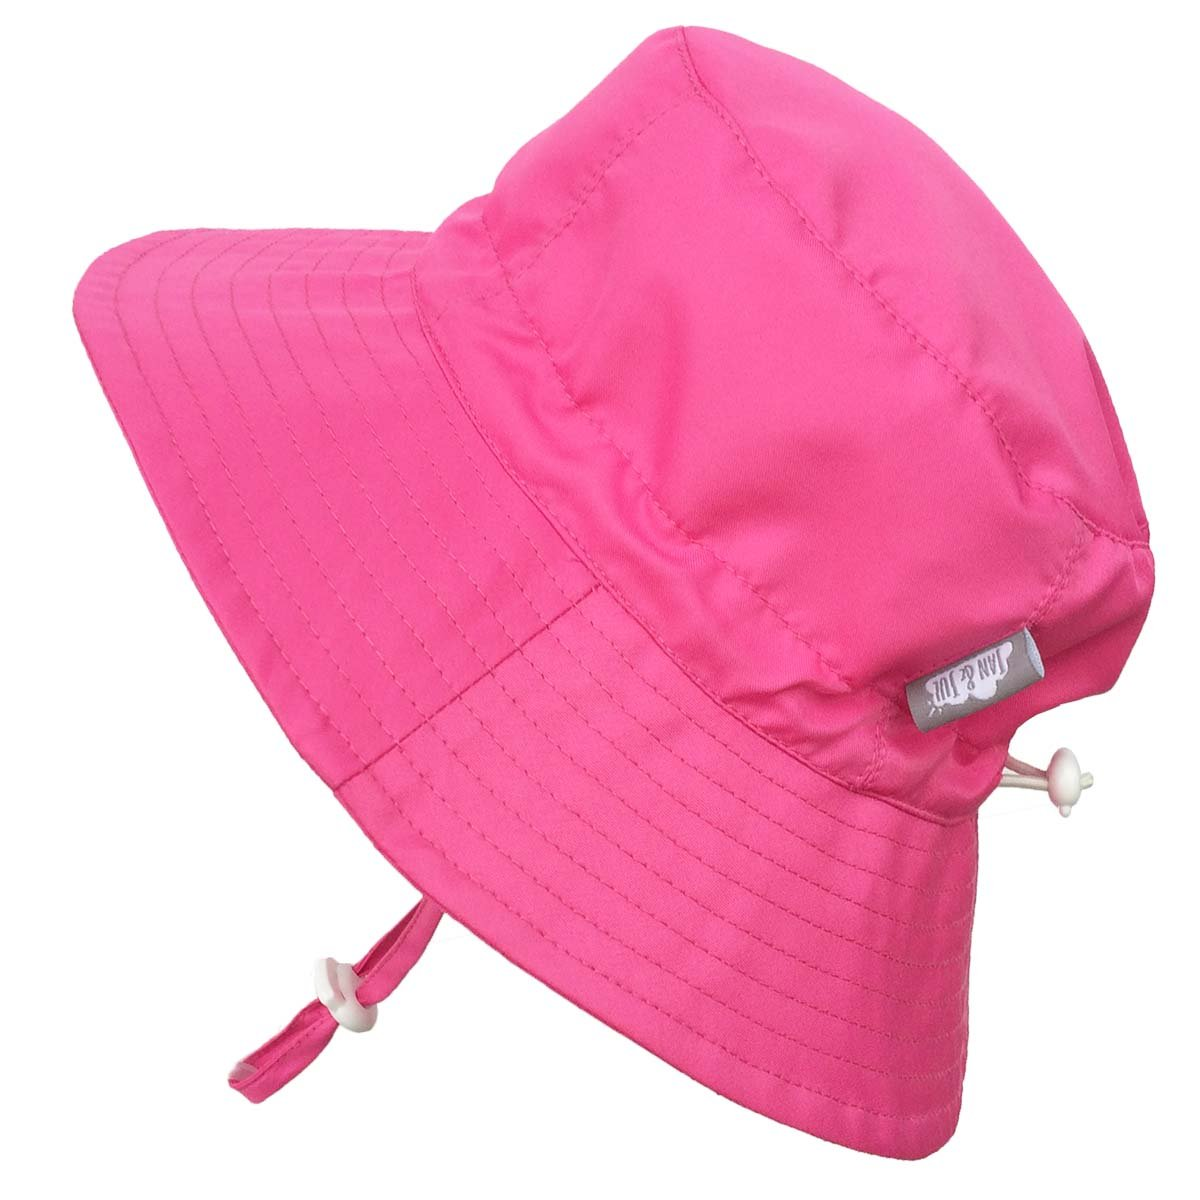 Kids 50 UPF Bucket Sun Hat, Size Adjustable Aqua Dry(XLarge: 3 - 12 Year, Hot Pink ) 14-50XL